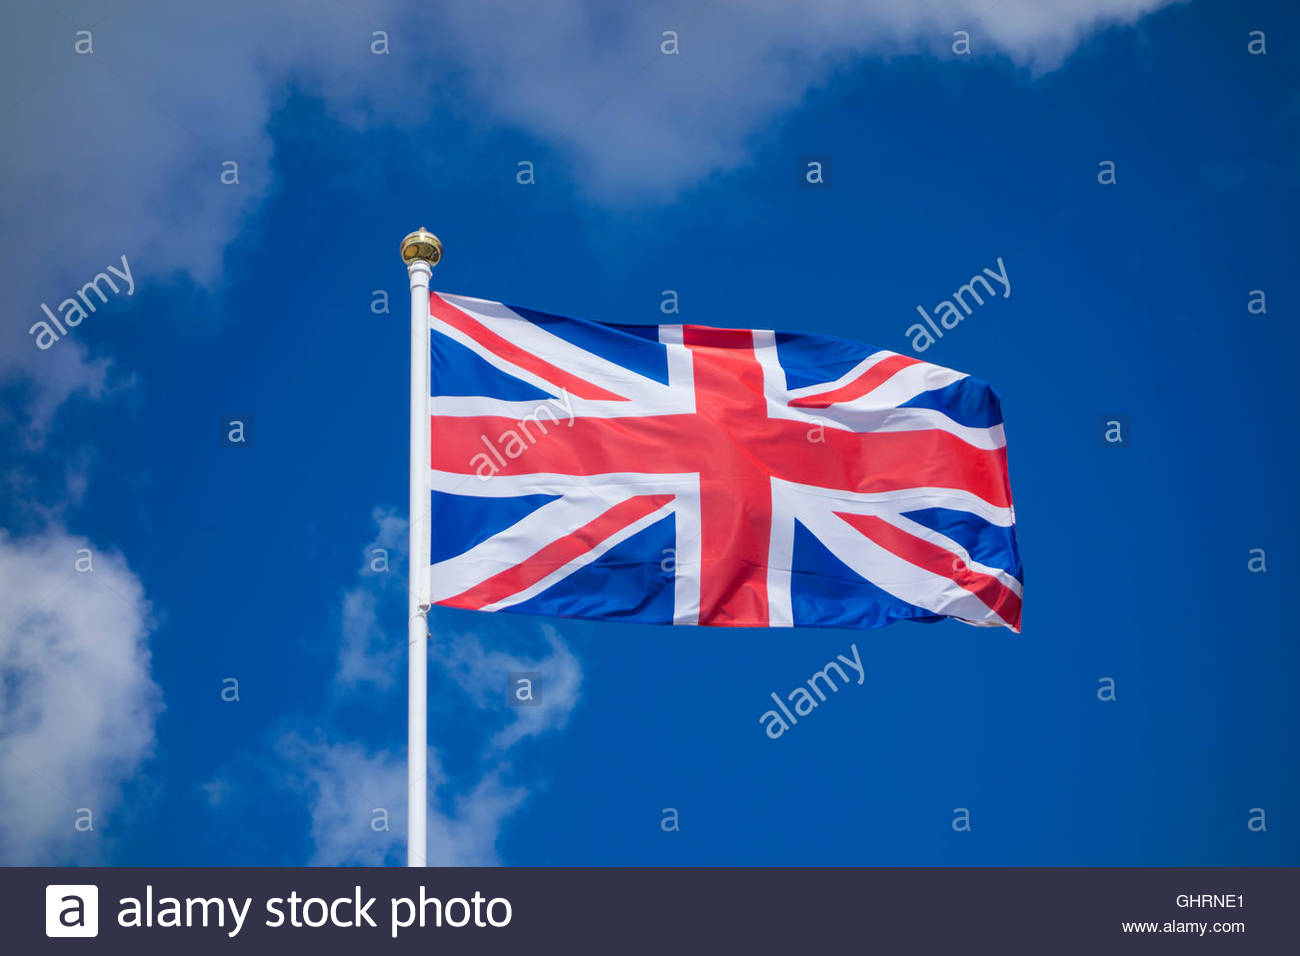 Union Jack flag on a flagpole against a bright blue sky with white clouds - Stock Image